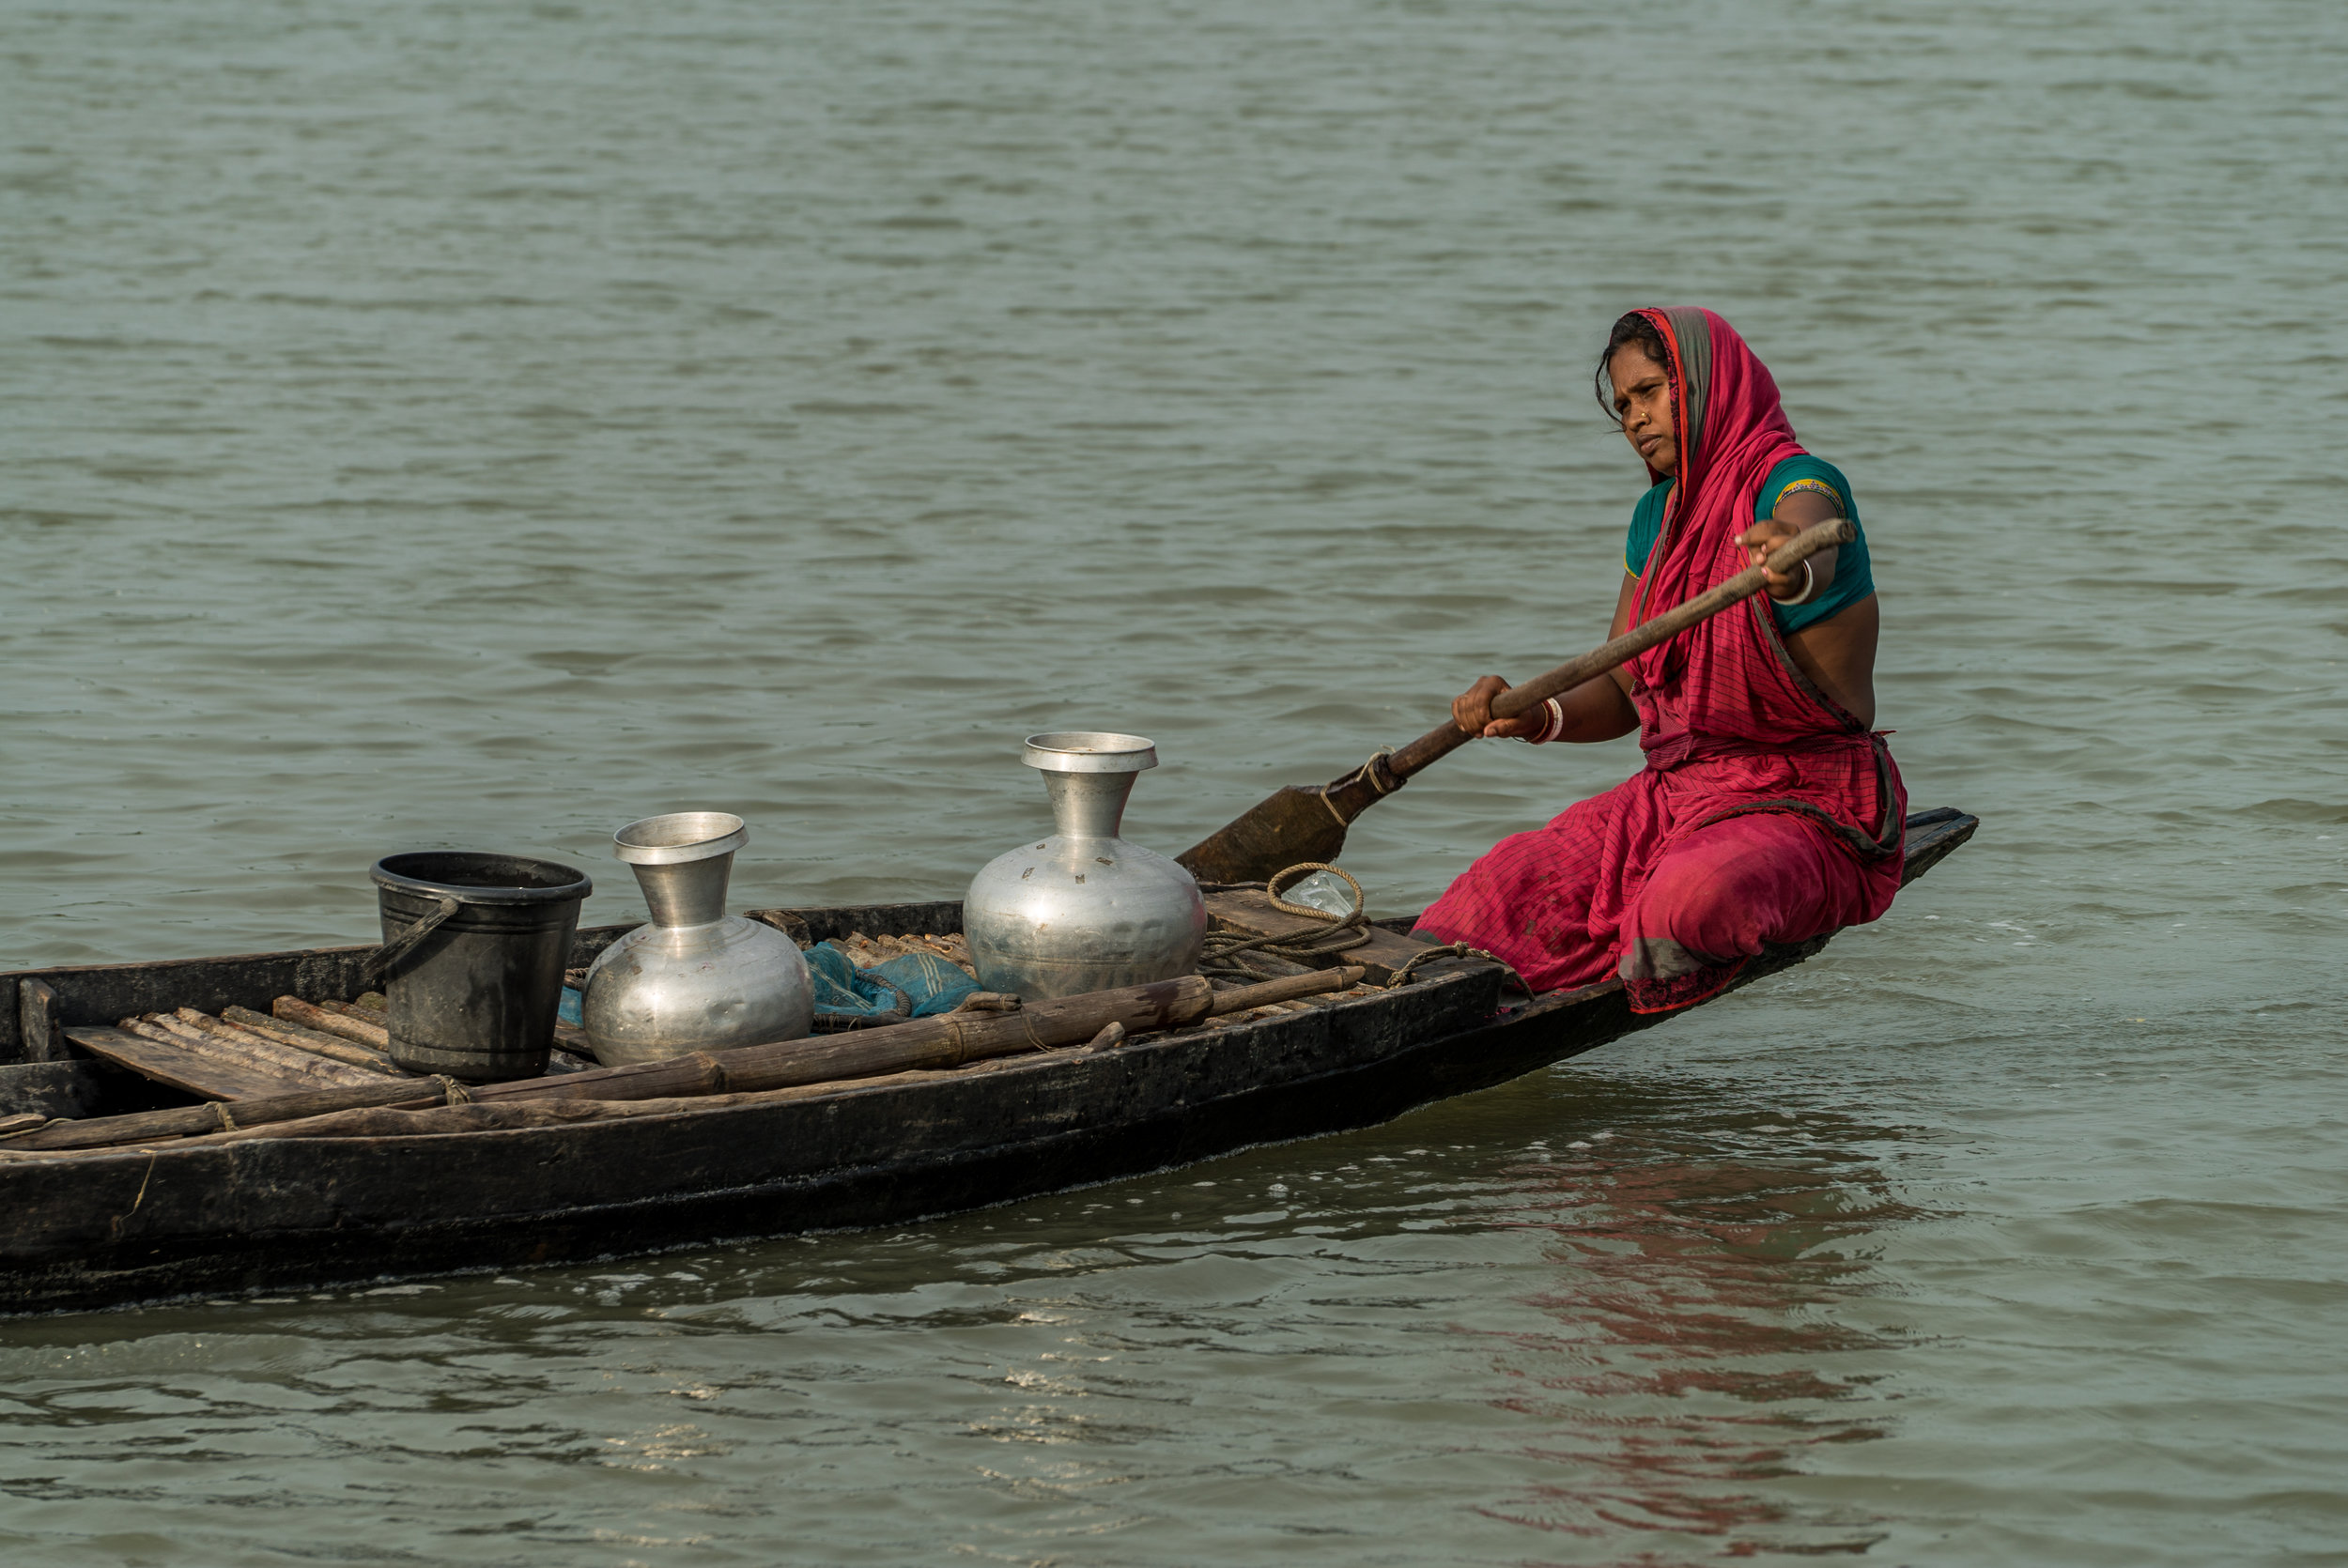 Bangladesh-water collection-woman-river-Photo-by-Aaron-Minks-DSC05373.jpg